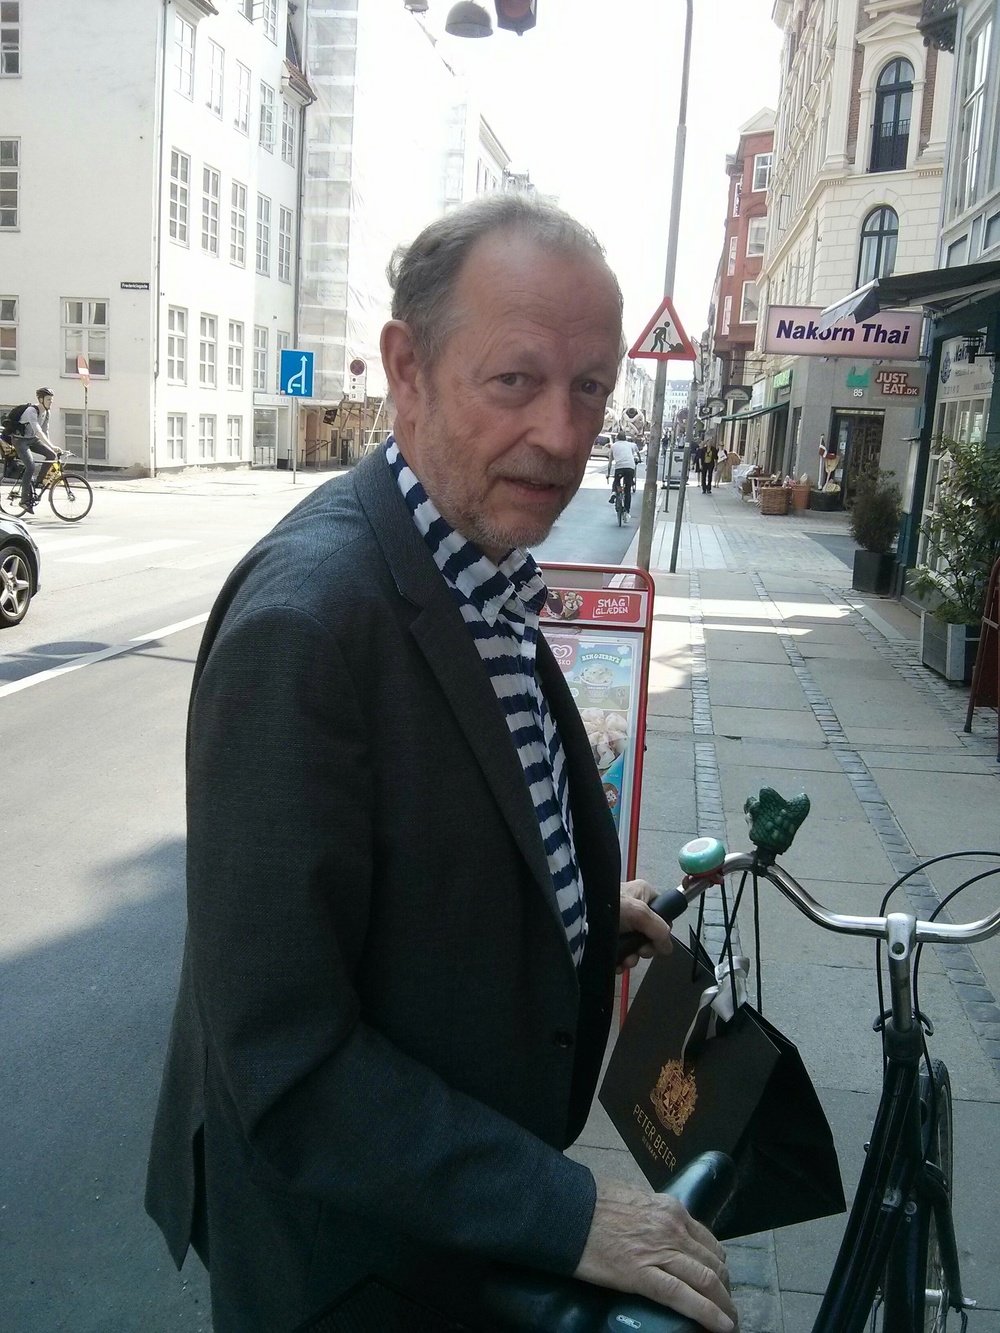 michael von essen, leaving lunch on bike as a true dane of to day.